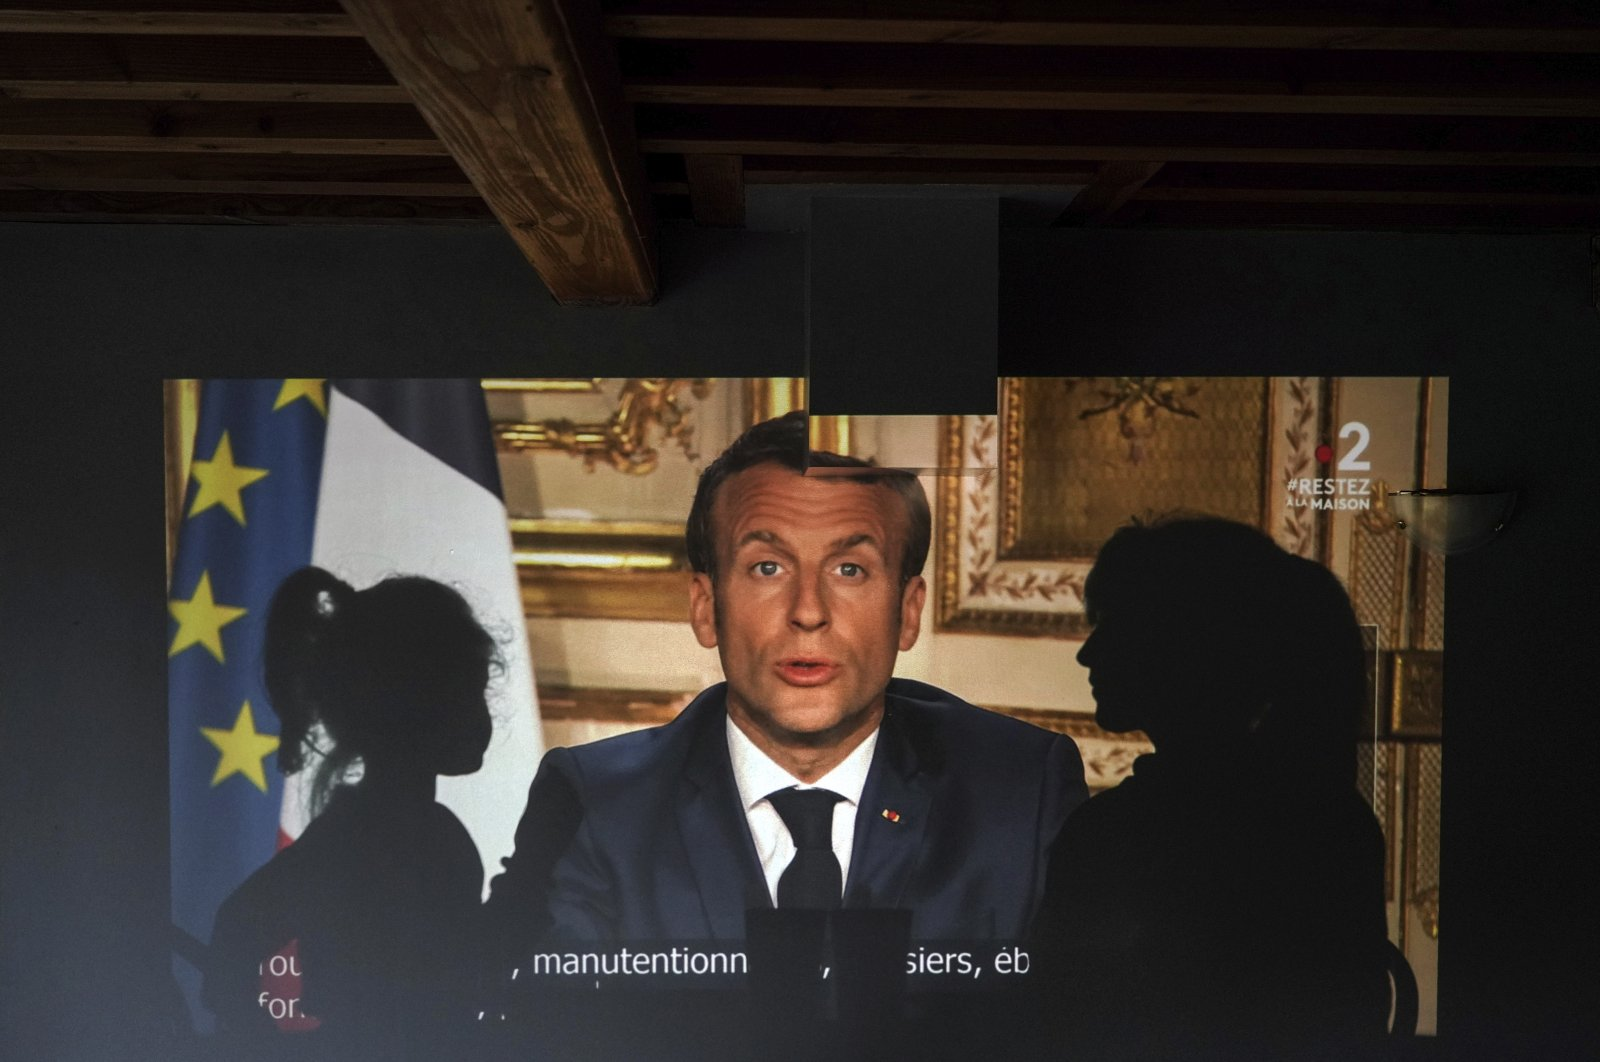 A family watches French President Emmanuel Macron's televised speech, on April 13, 2020, in Lyon, central France. (AP Photo)